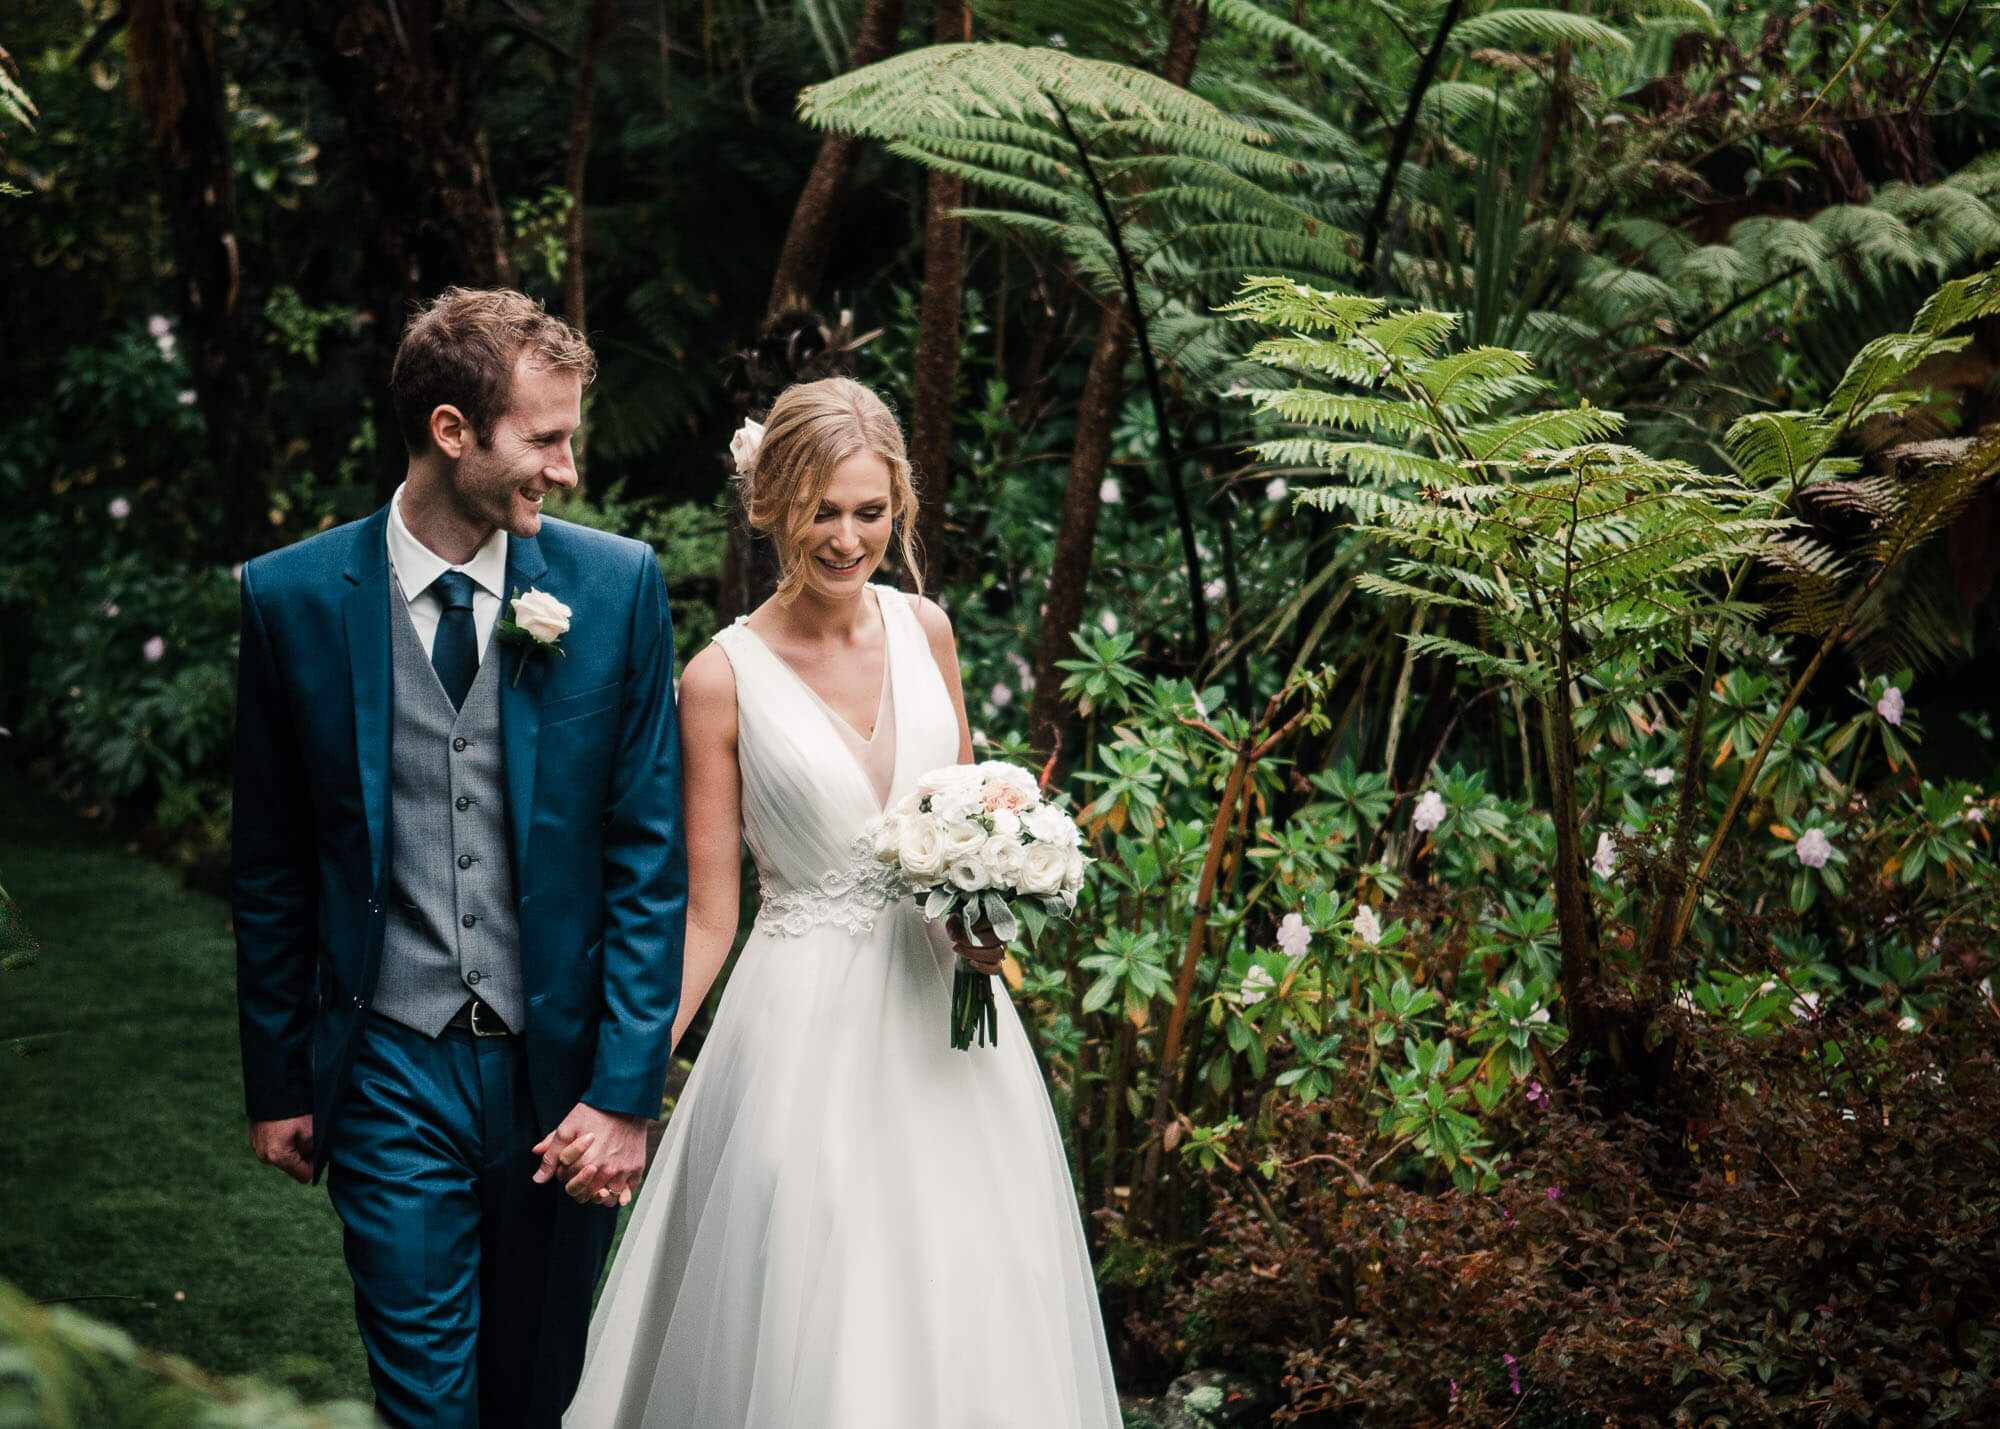 bride-and-groom-walking-through-forest.jpg